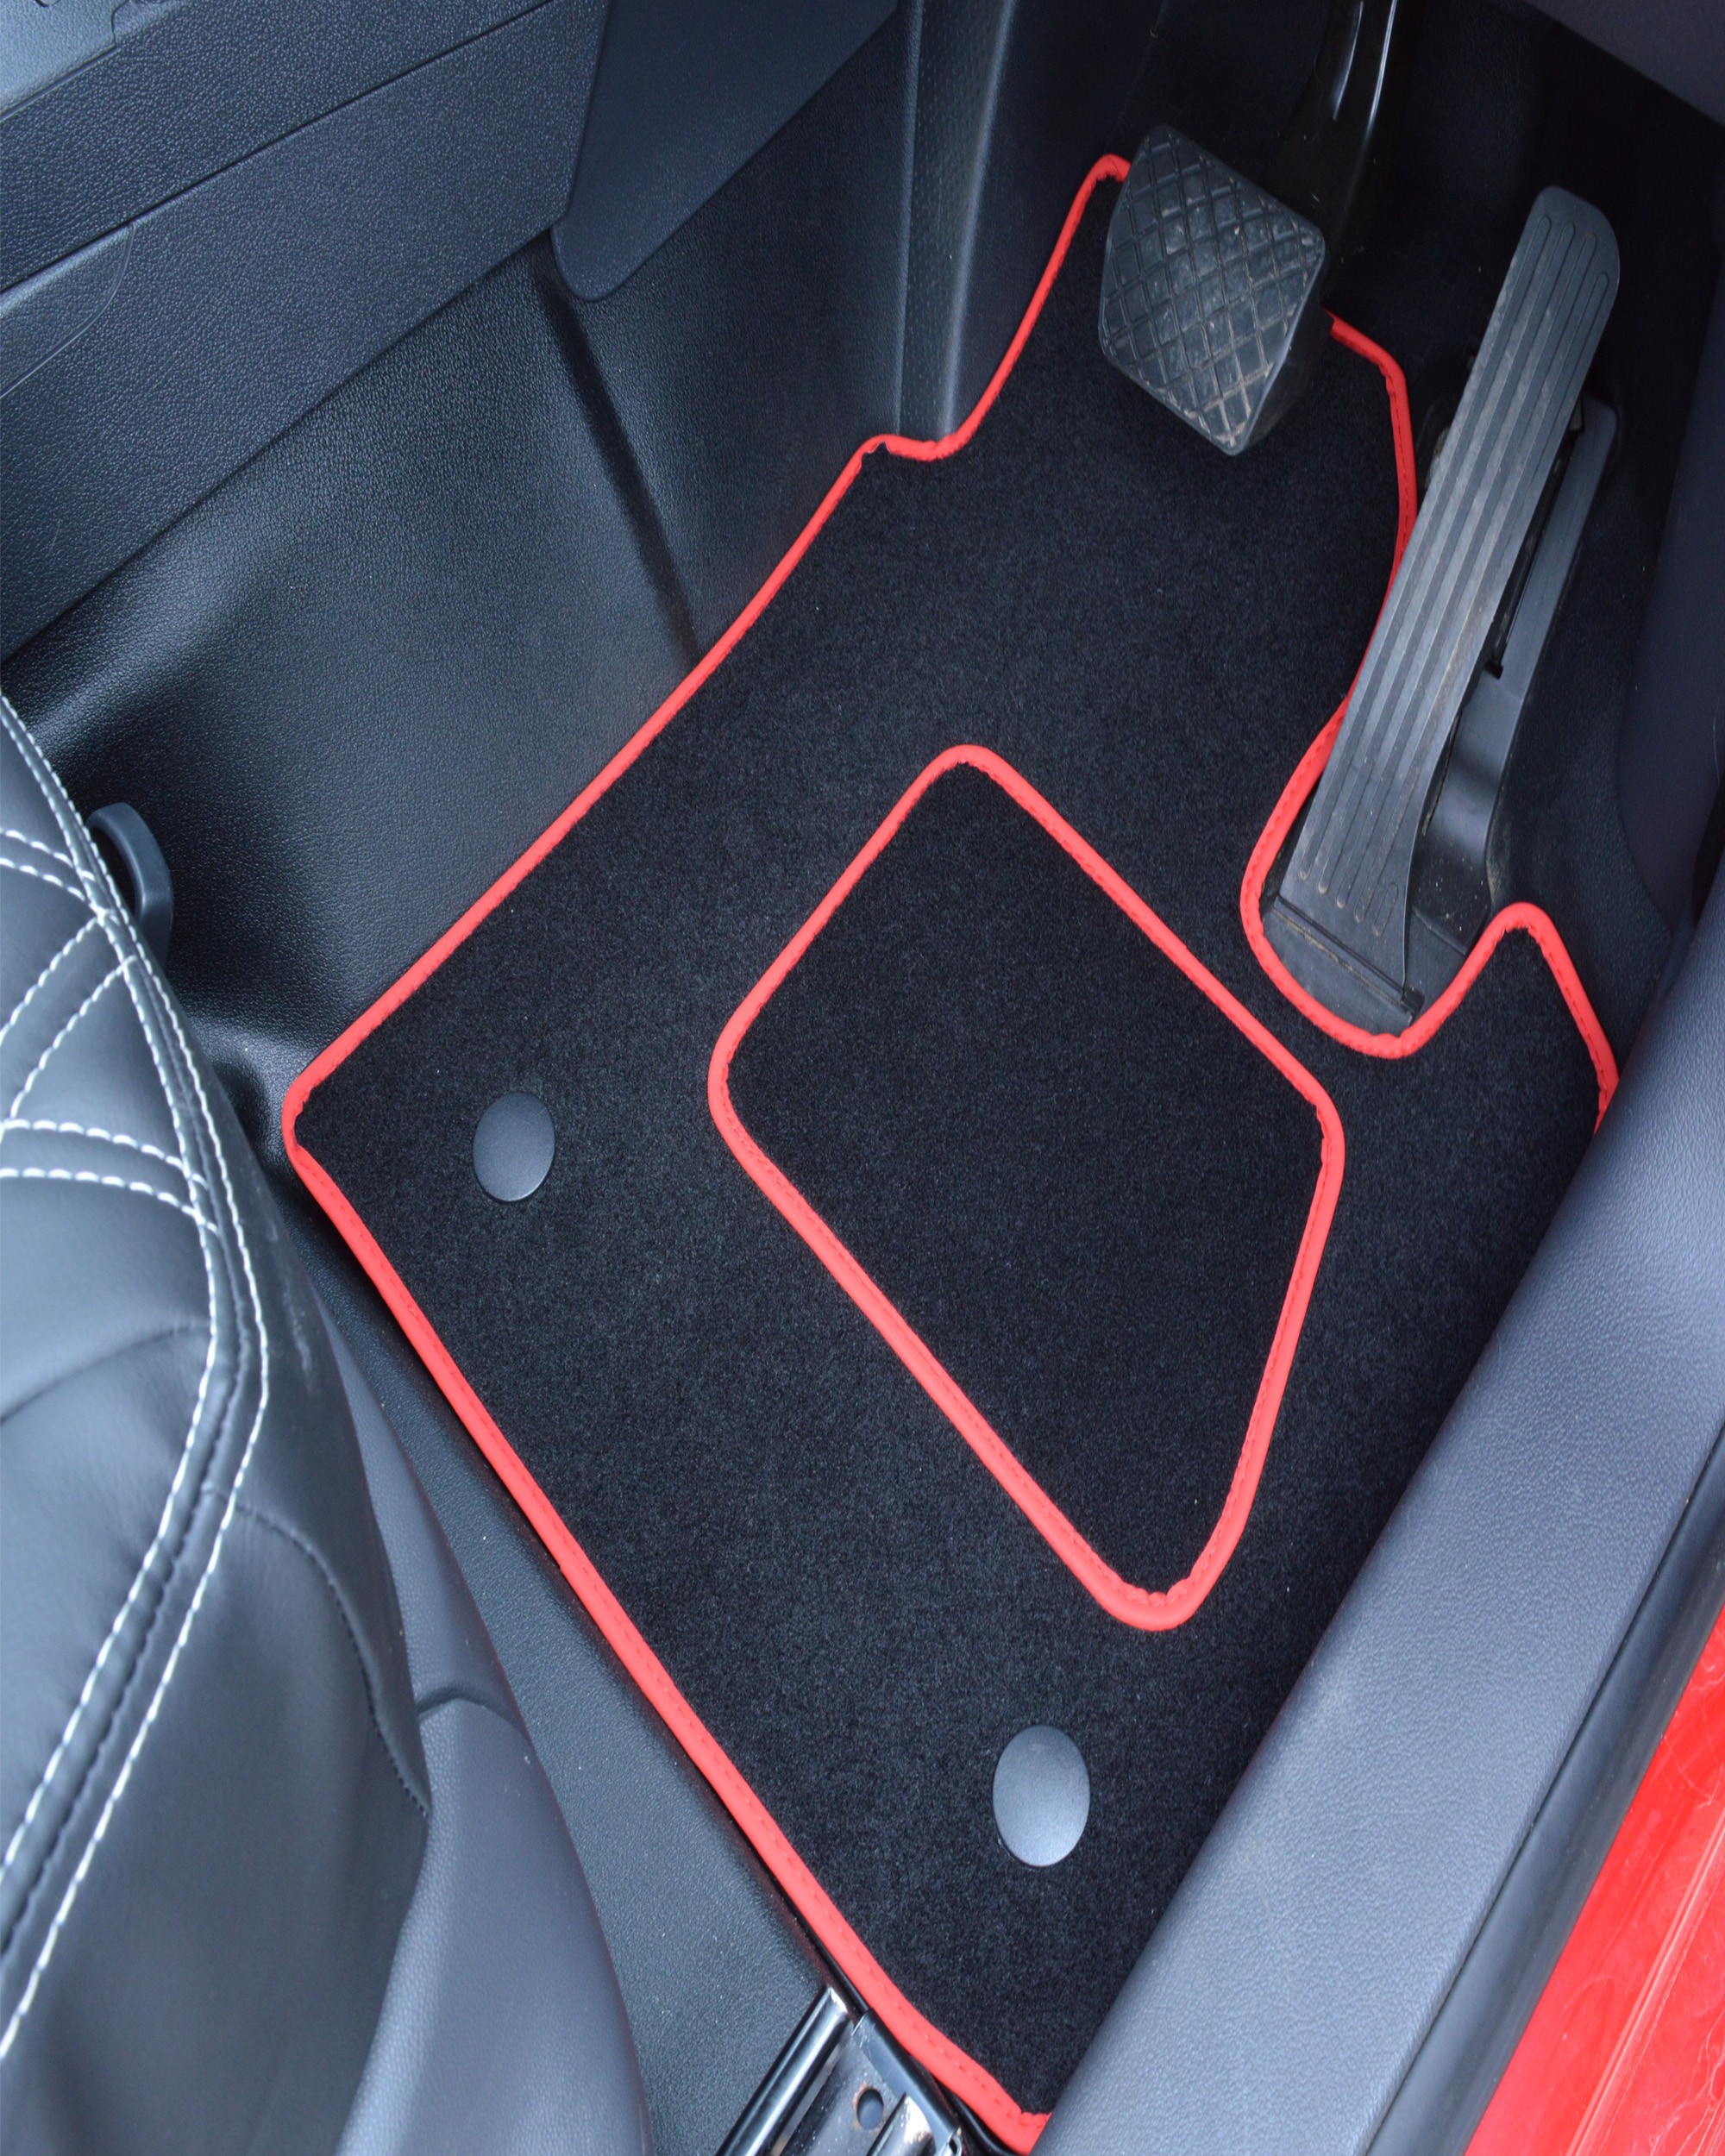 VW Caddy Van Floor Mats